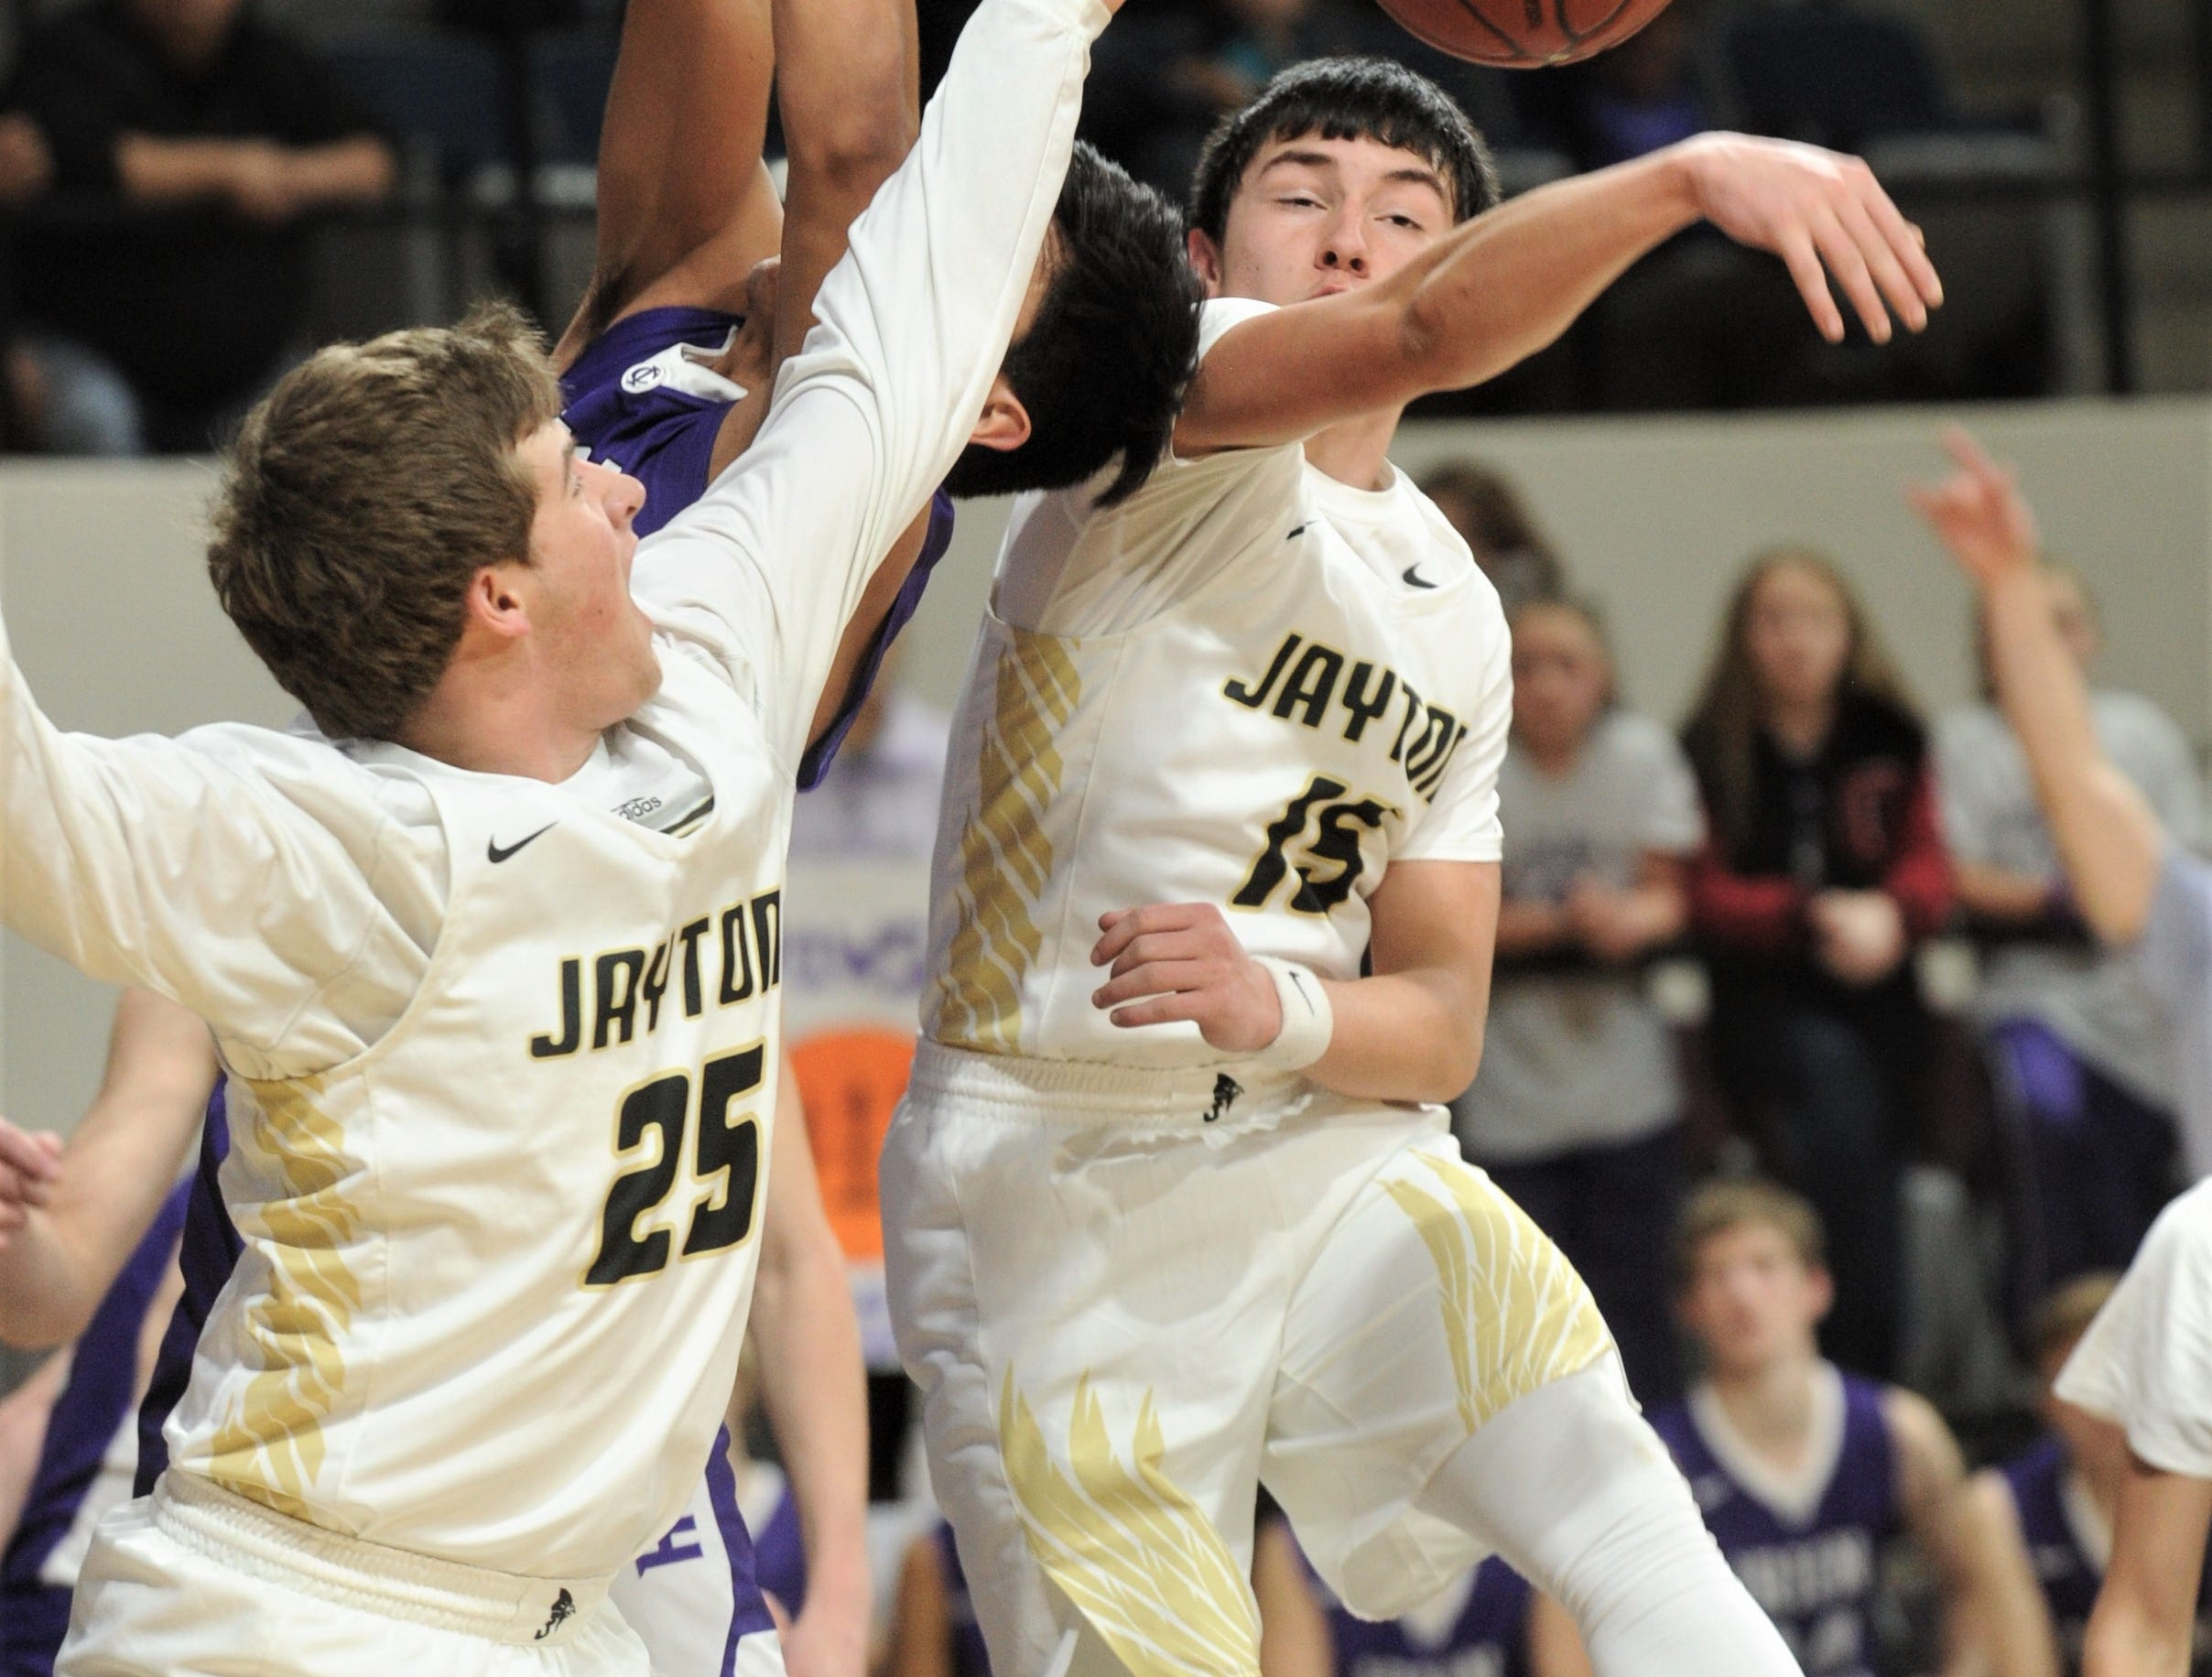 Jayton's Pecos Smith, right, and Kaden Awe (25) knock the ball as an Irion County player drives to the basket. The Jaybirds beat Irion County 47-32 in the Region II-1A championship game Saturday, March 2, 2019, at Abilene Christian's Moody Coliseum.